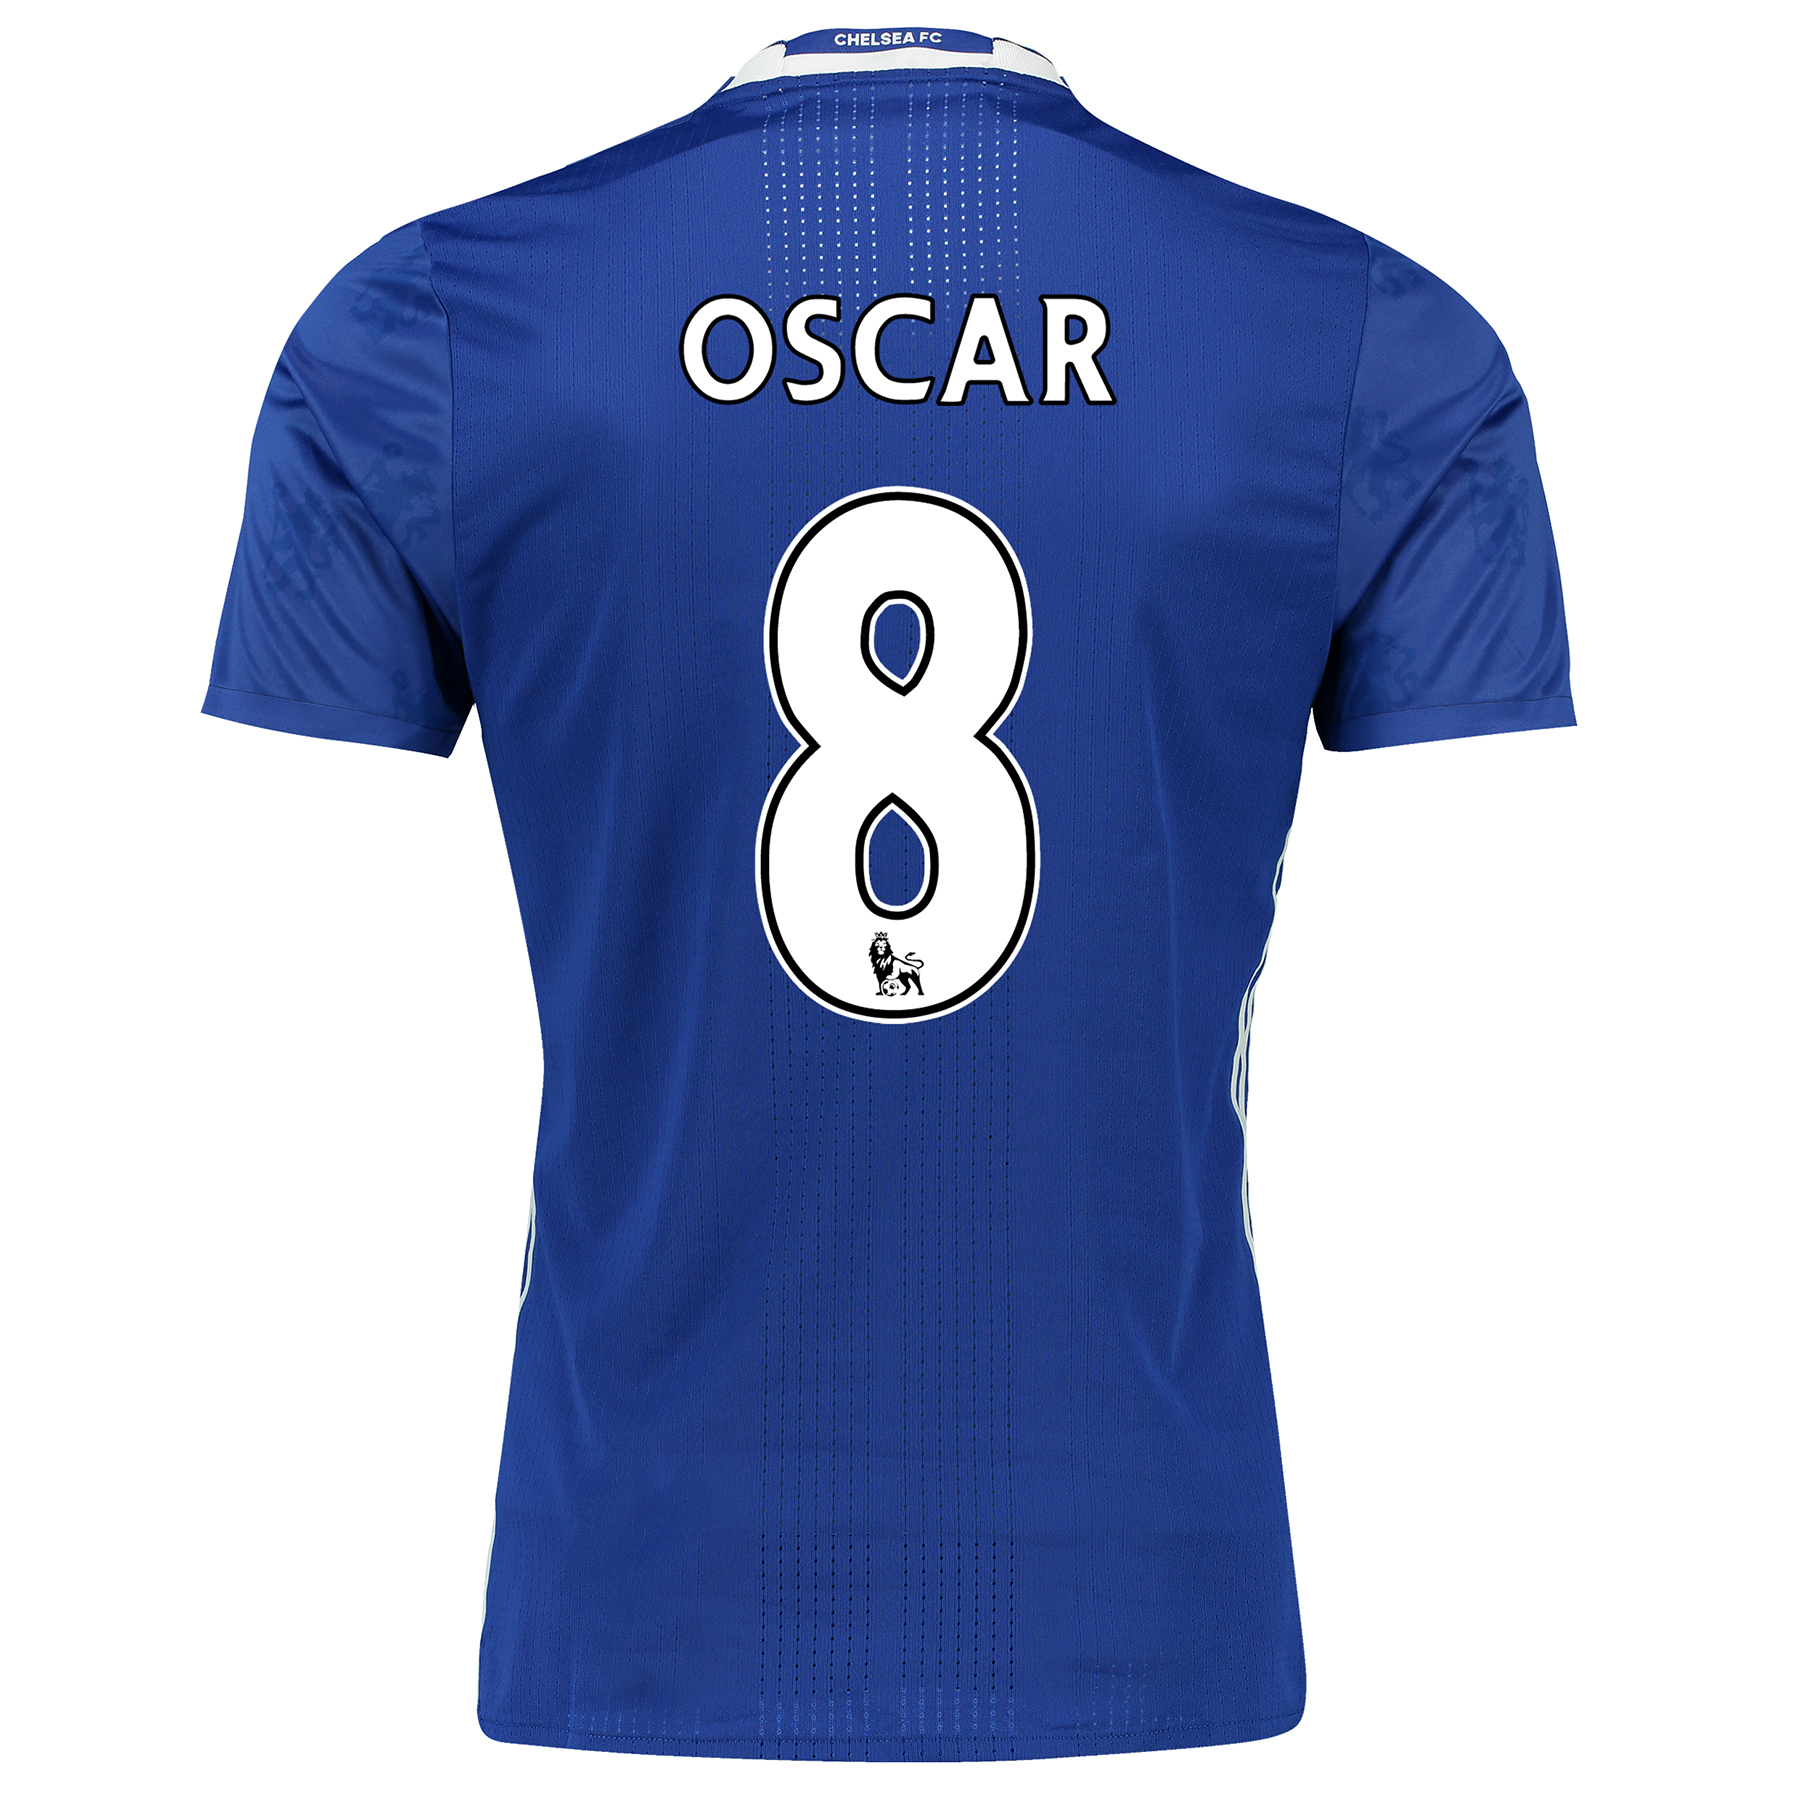 Shop Oscar Printed Shirts